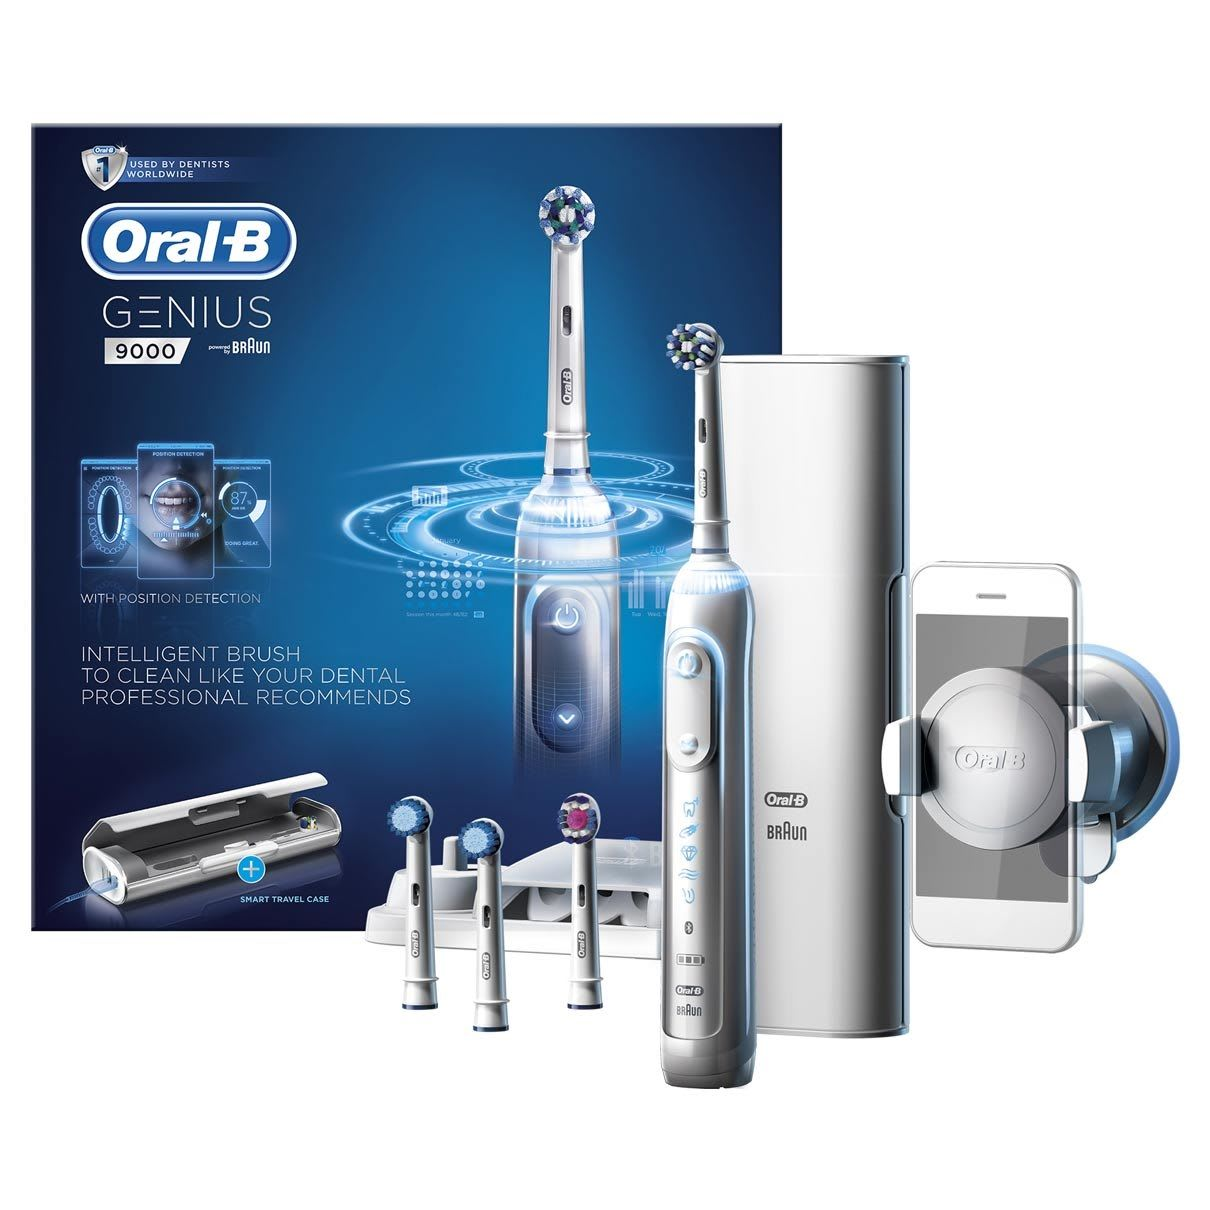 thumb ORAL-B GENIUS 9000 ELECTRIC TOOTHBRUSH